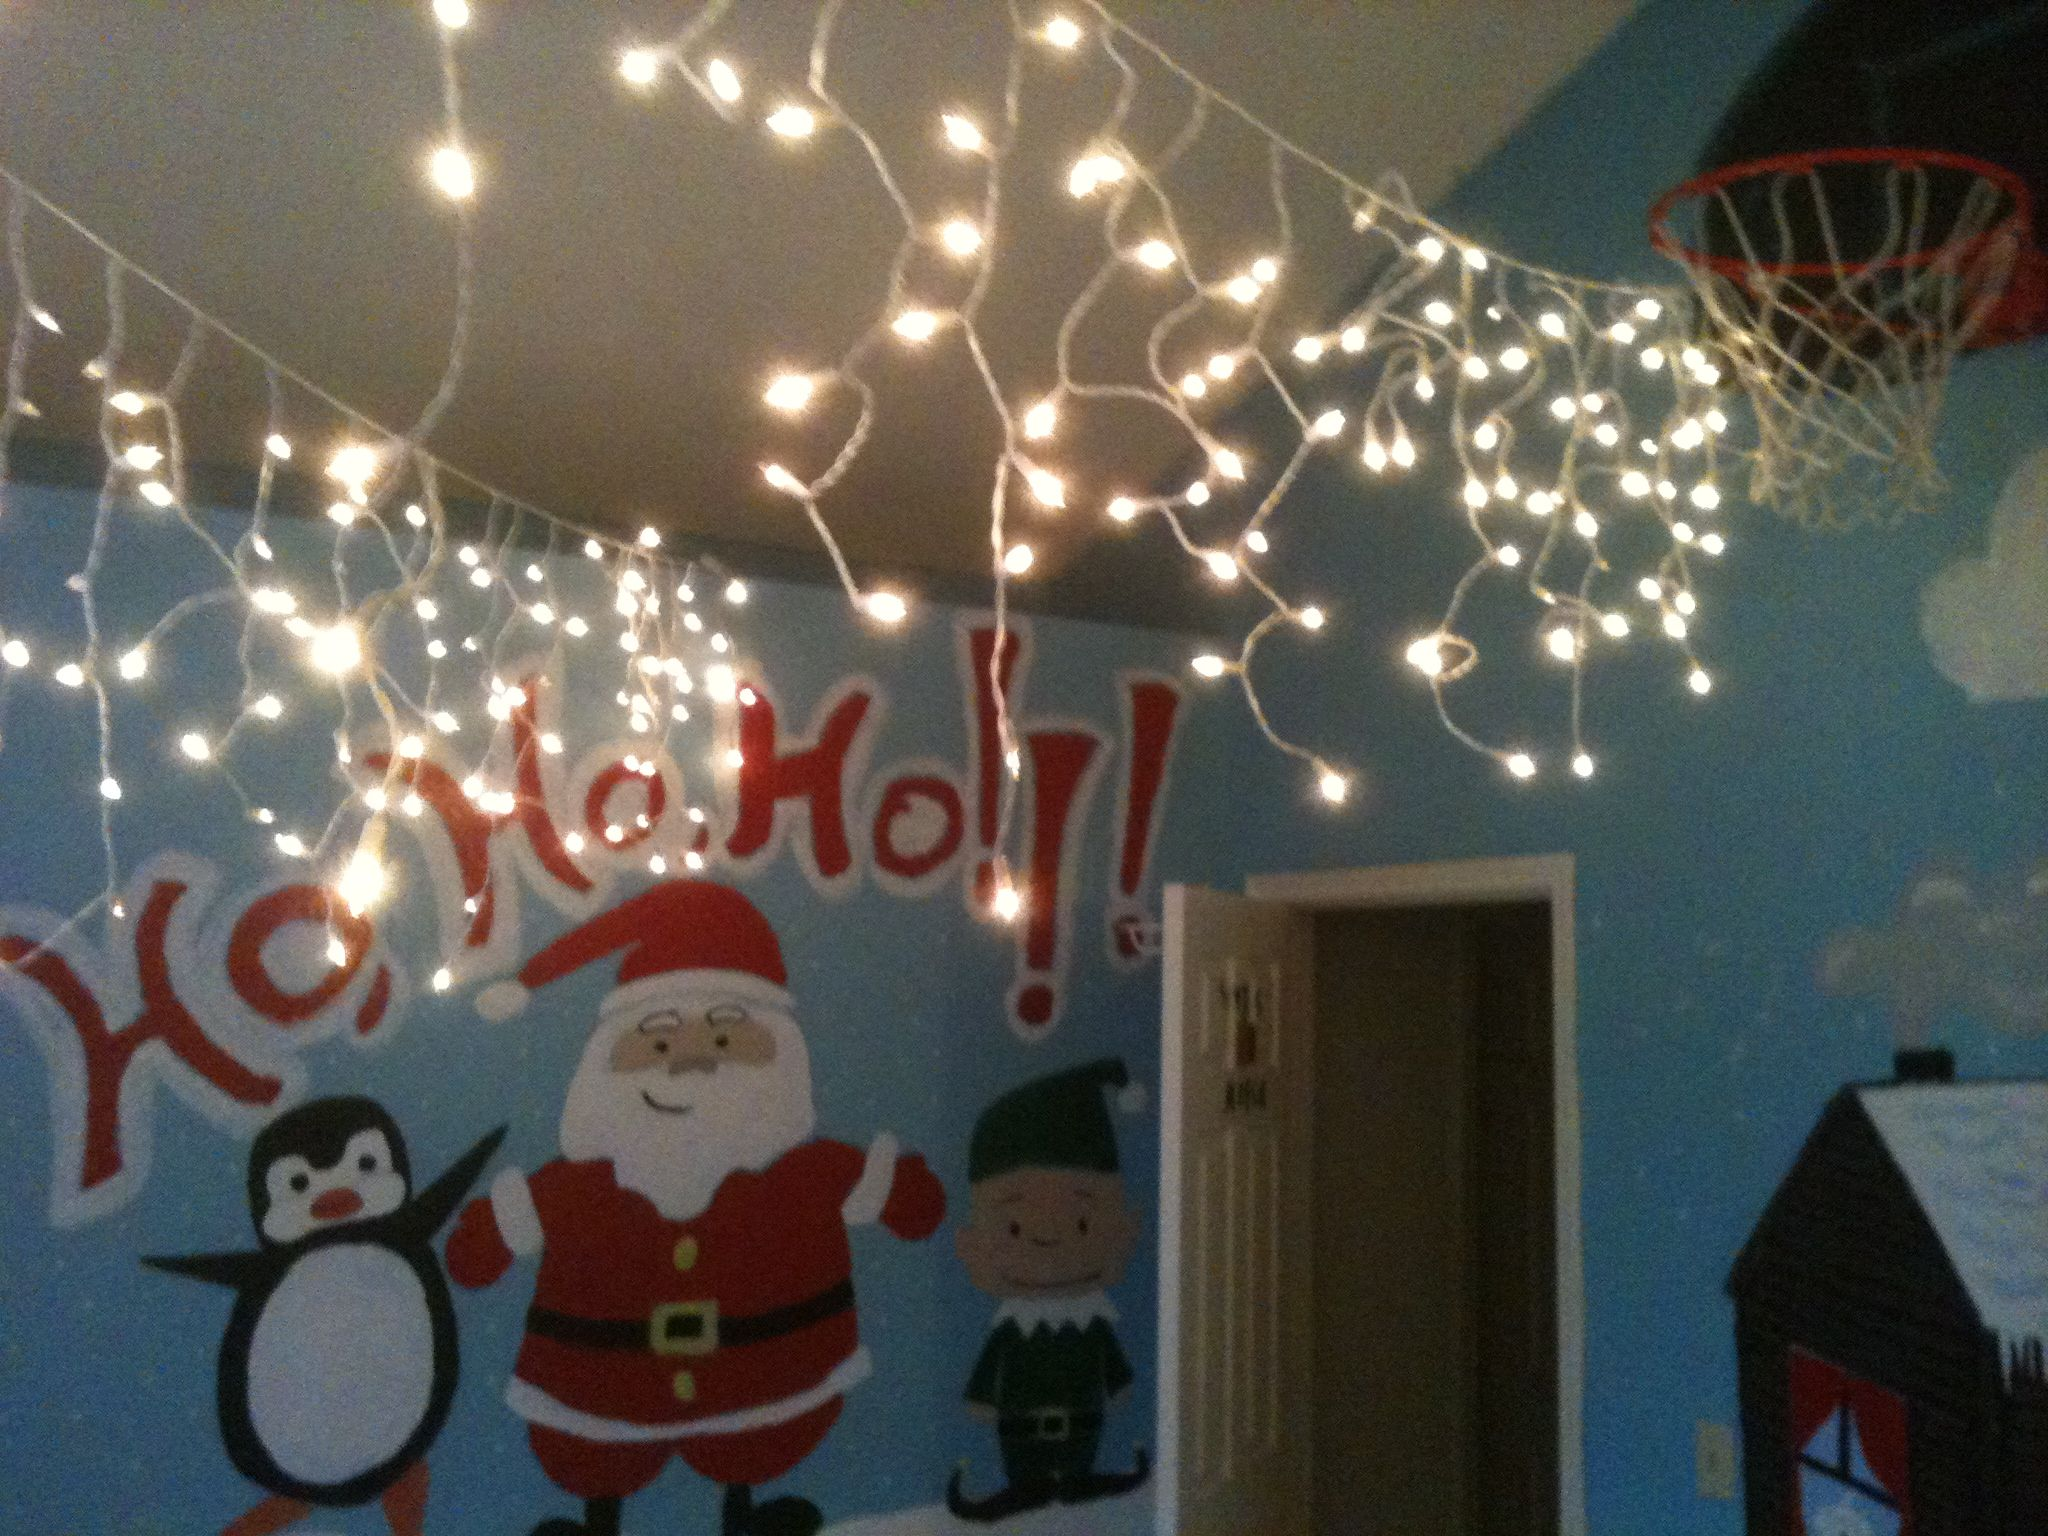 My old room, decorated for Christmas.